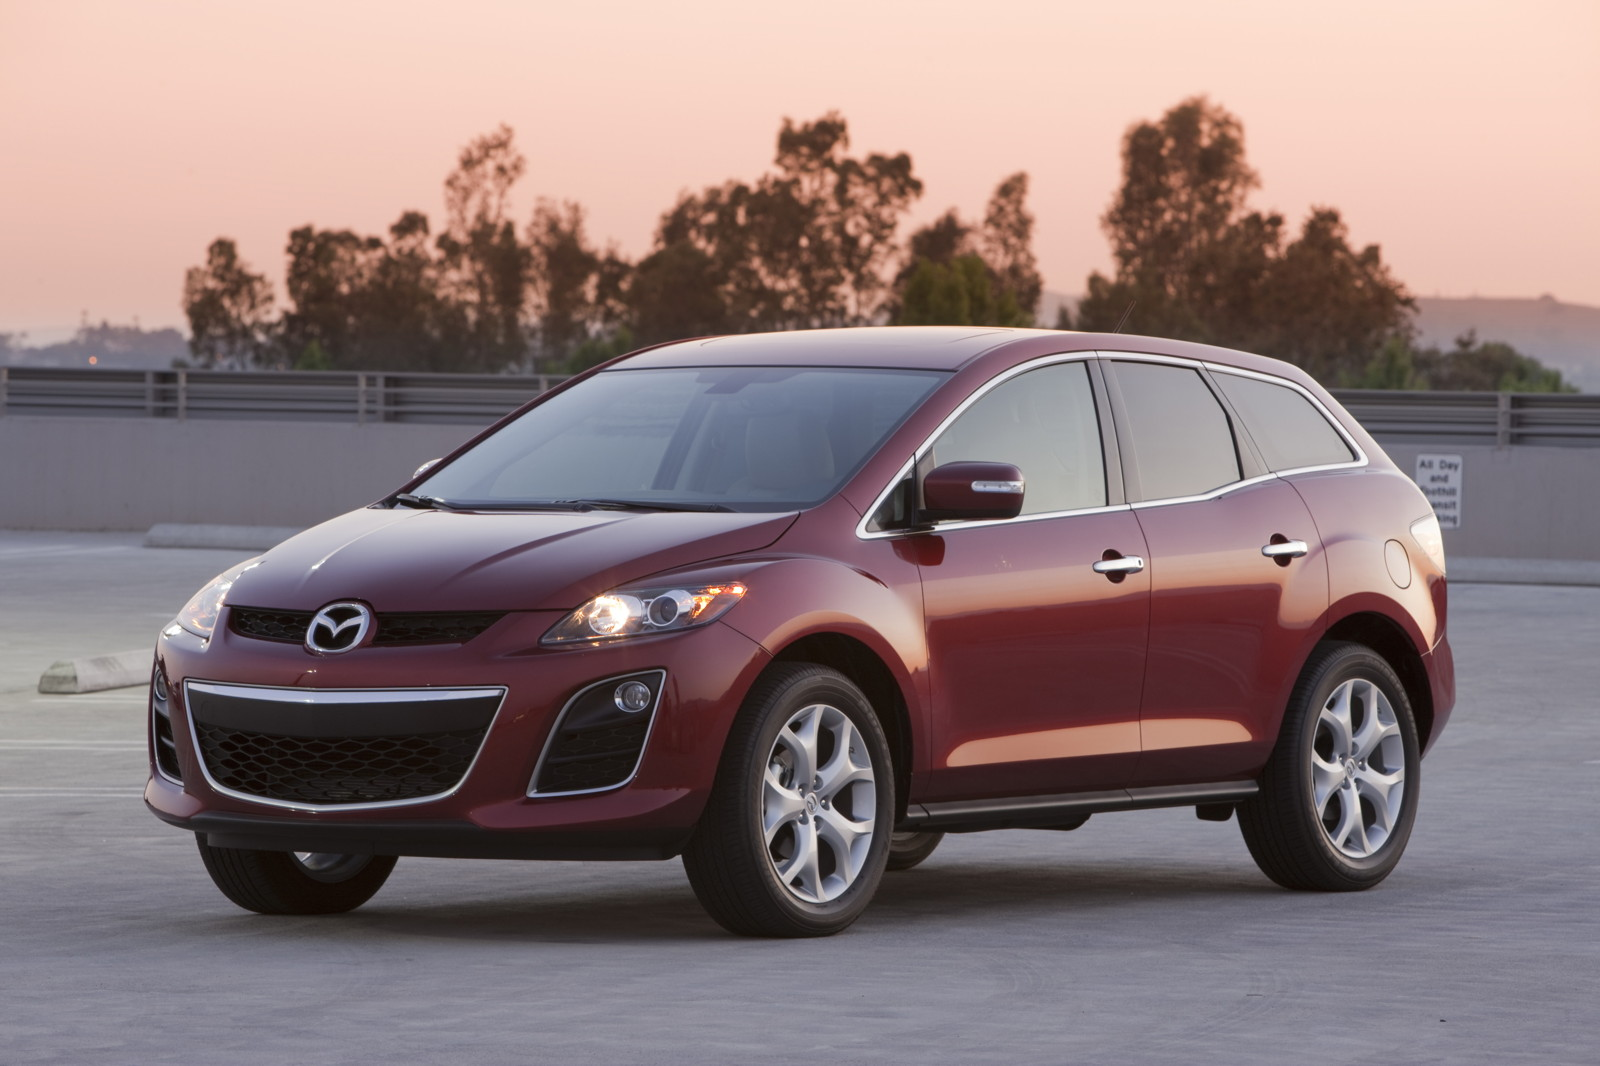 2010 Mazda Cx 7 Review Ratings Specs Prices And Photos